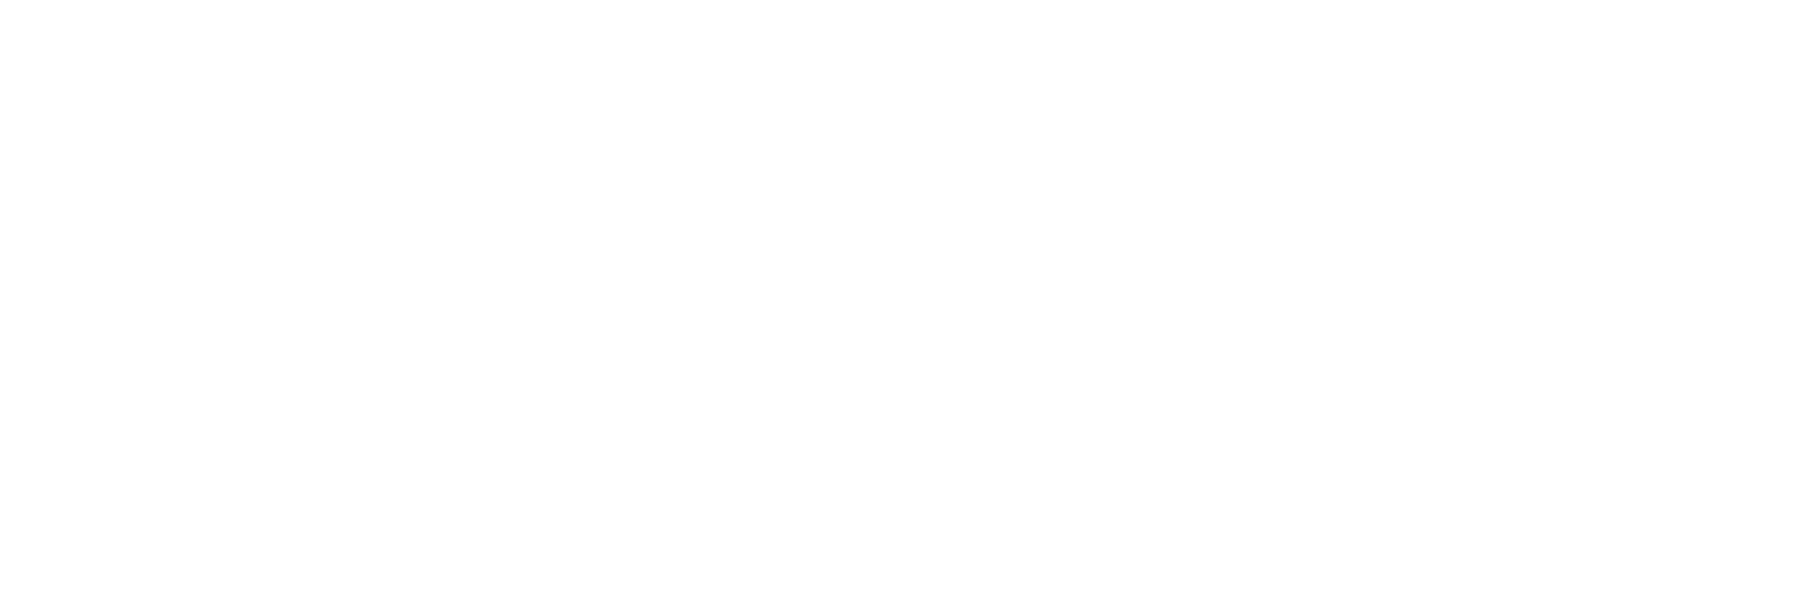 Advanced Manufacturing Accolades 3